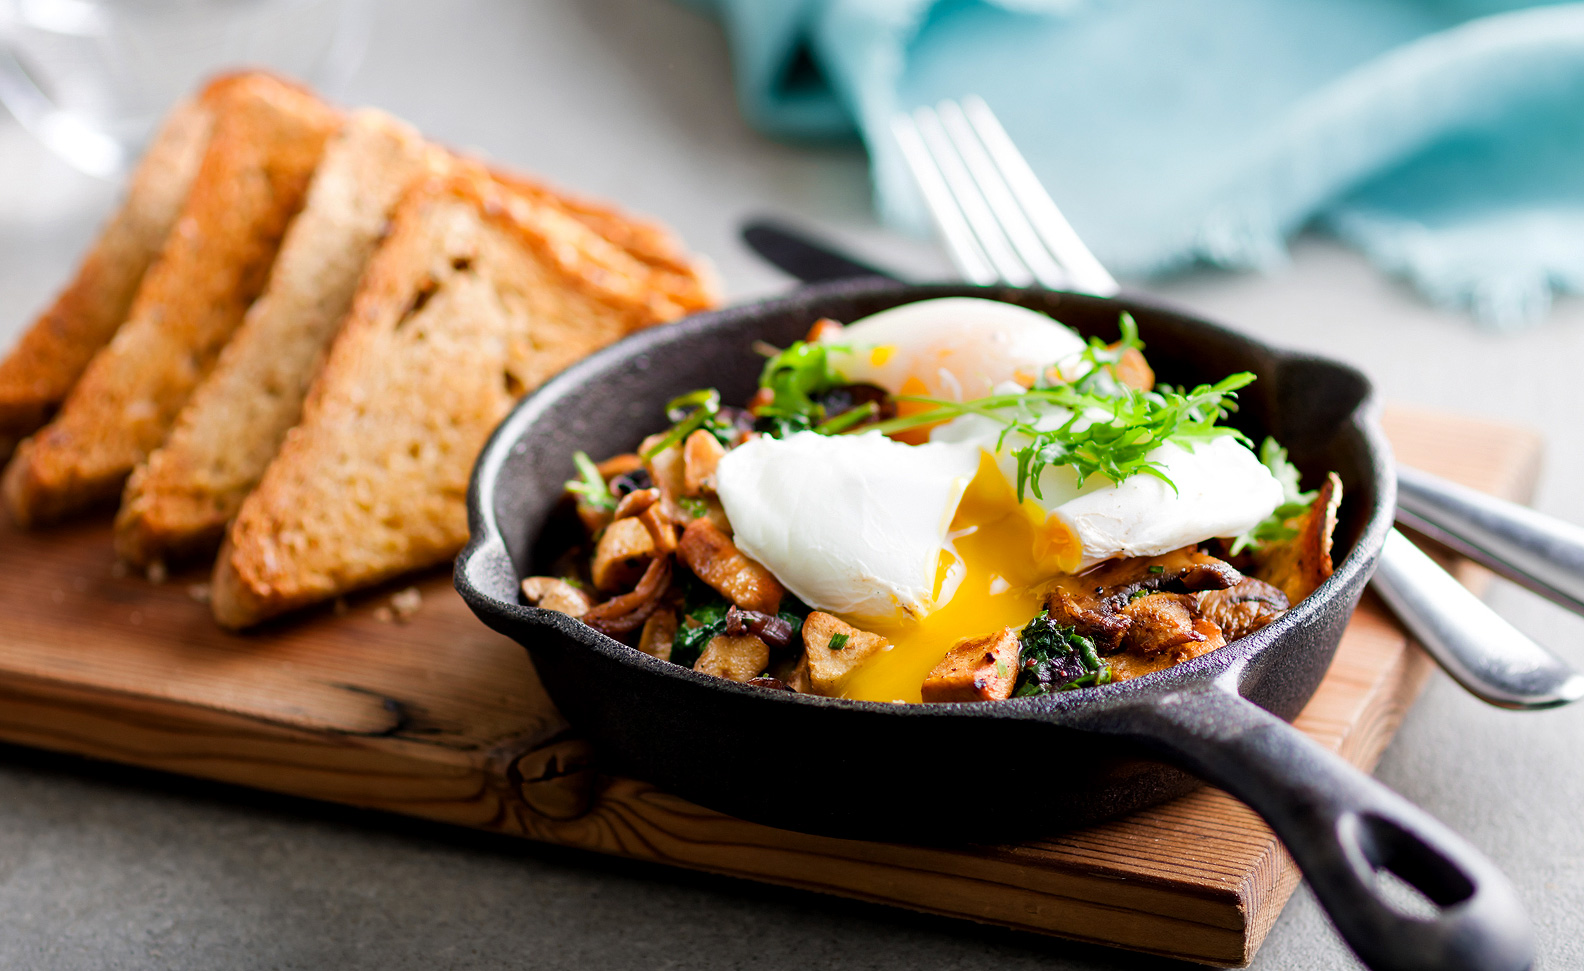 Fairmont Waterfront Hotel Brunch: Wild Mushroom Hash with Poached Eggs